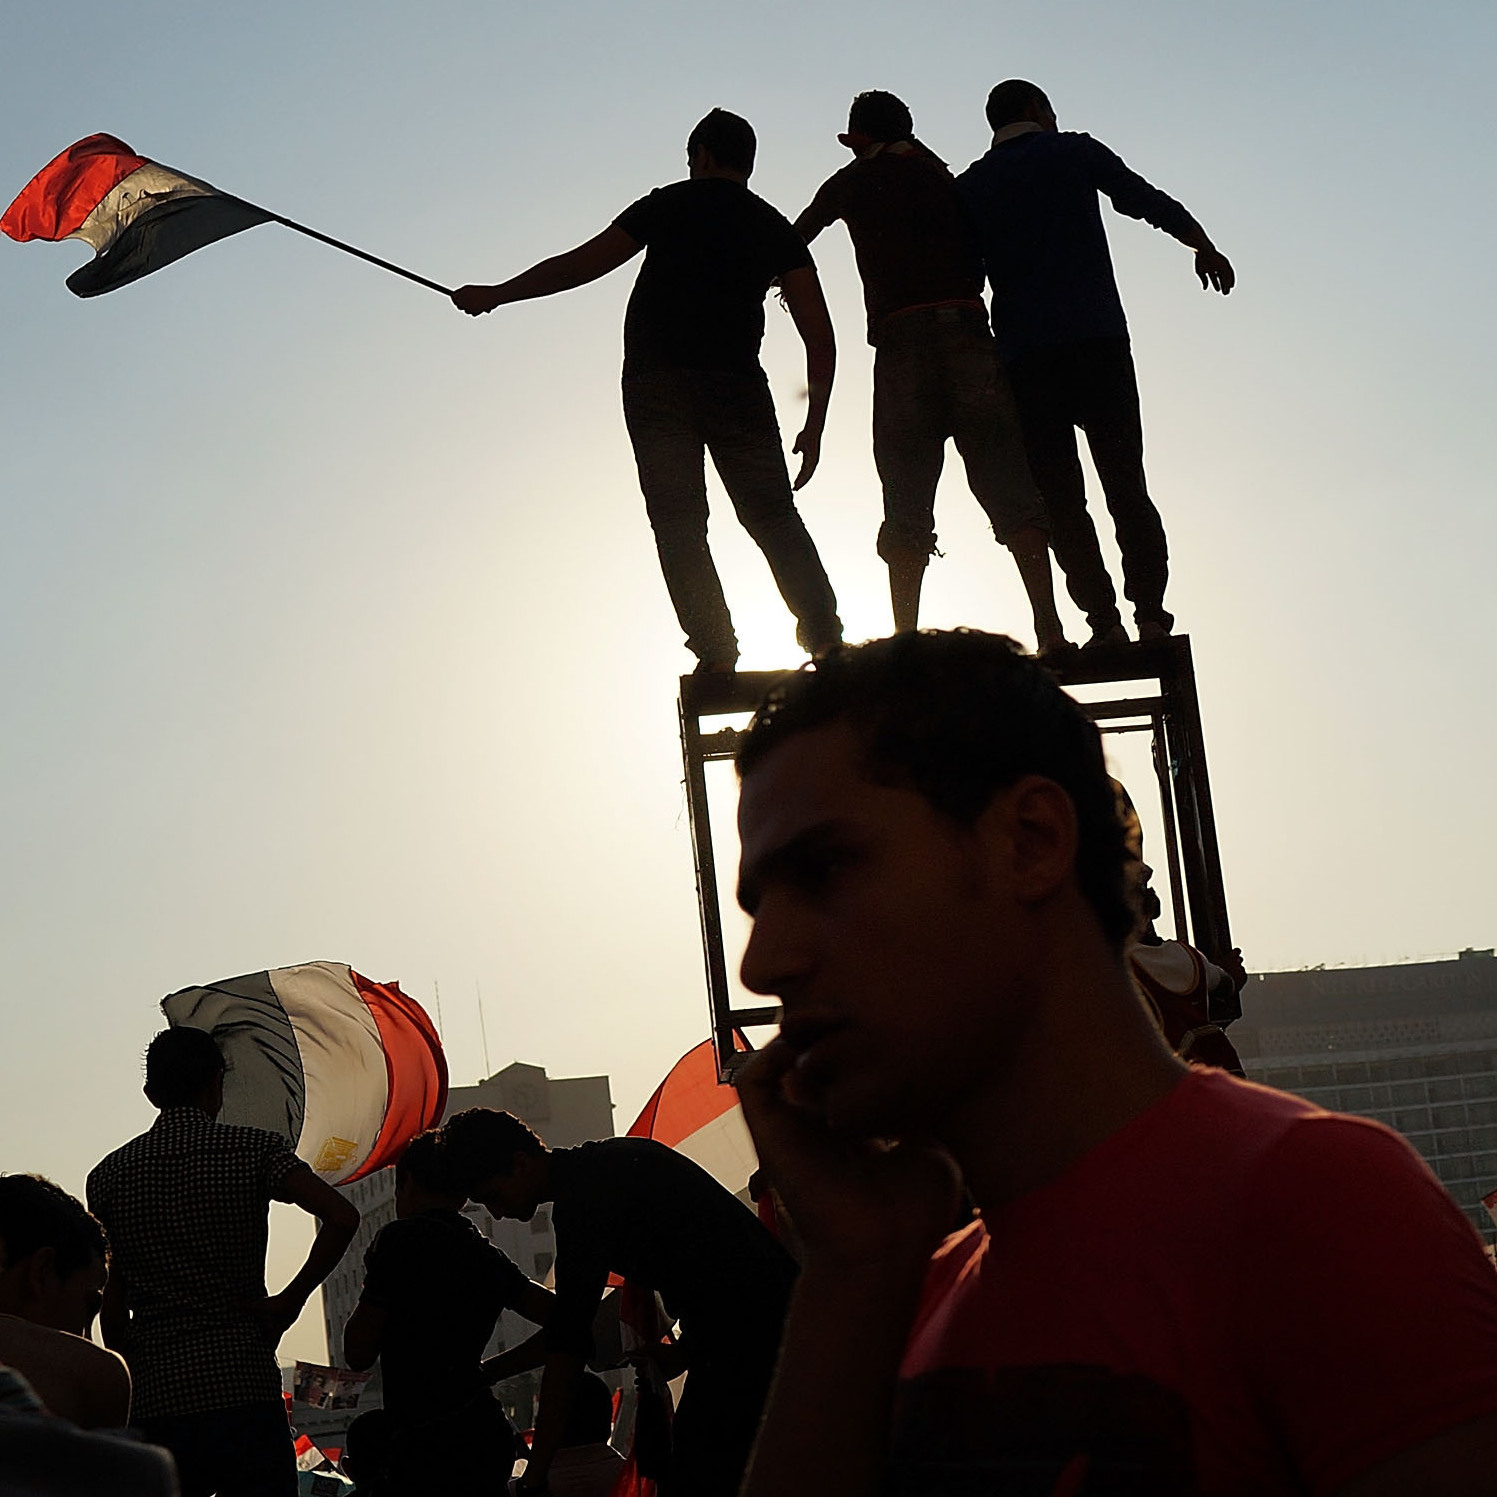 People dance and cheer in Tahrir Square on July 4, the day after former Egyptian President Mohammed Morsi, the country's first democratically elected president, was ousted from power on July 4, 2013 in Cairo, Egypt.